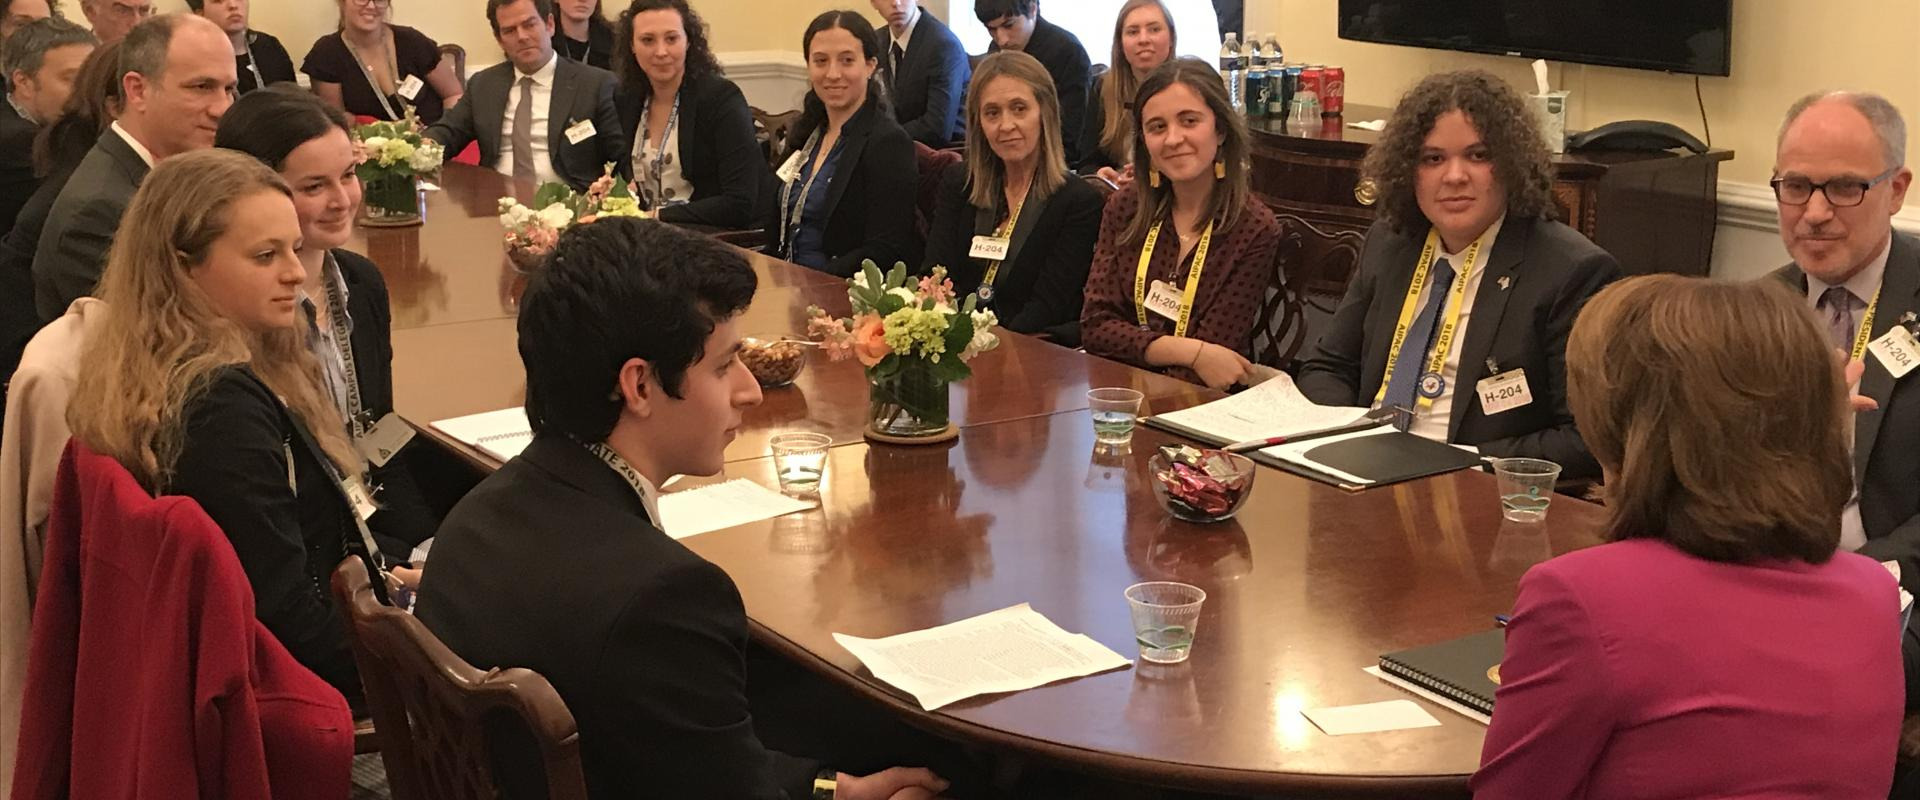 Congresswoman Pelosi meets with San Franciscans in town for the AIPAC conference where they discussed efforts to support and strengthen the US-Israel relationship and the importance of foreign aid.